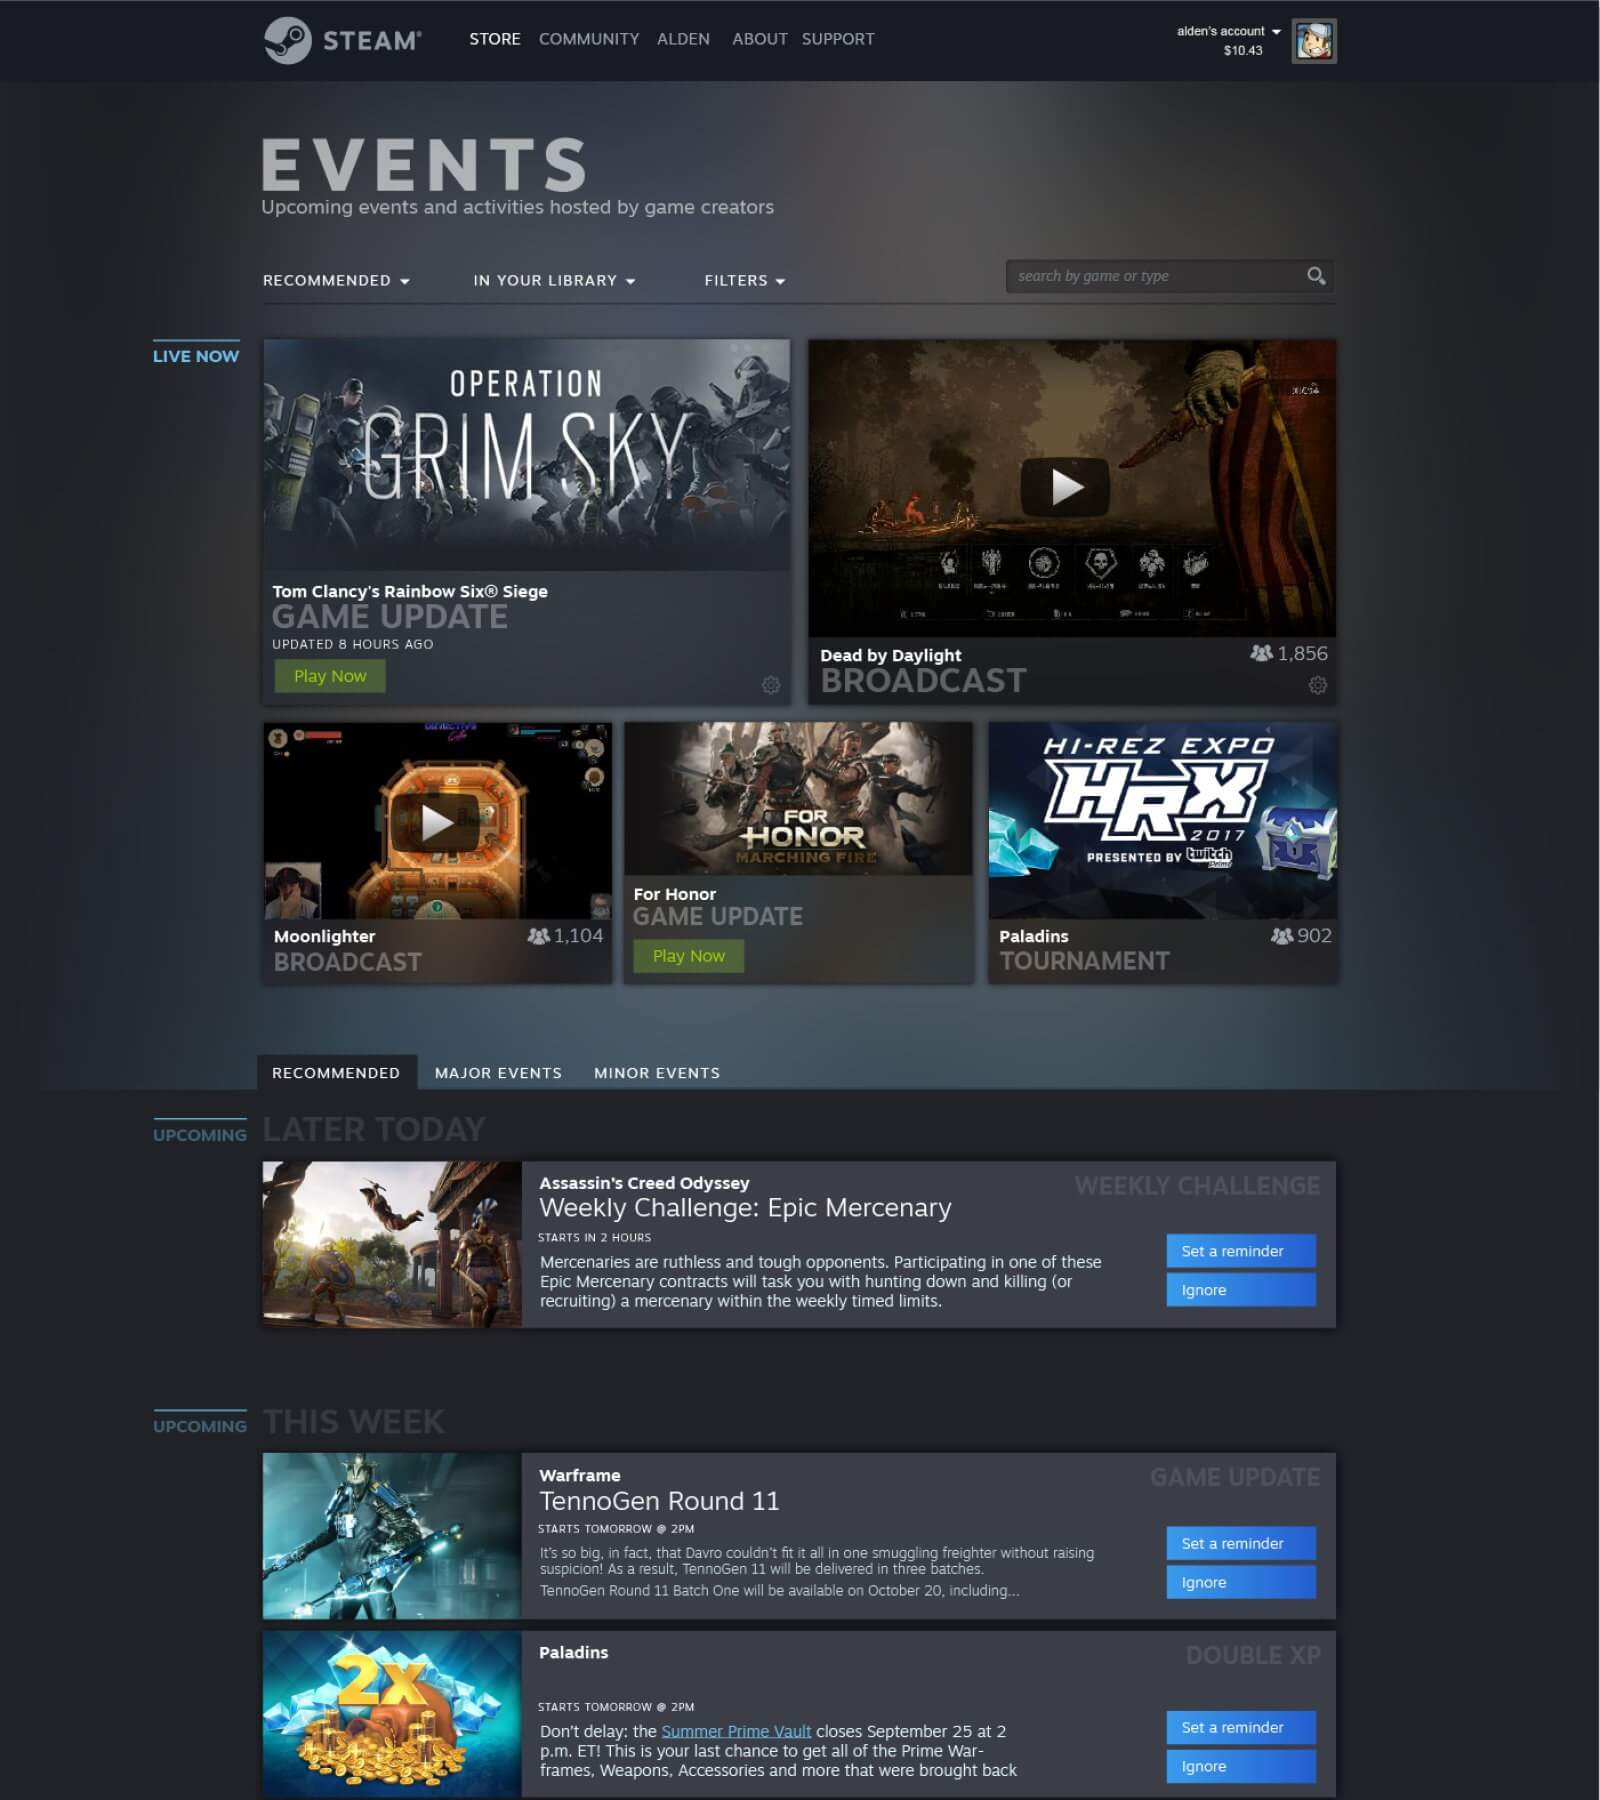 Valve is revamping your Steam Library, introducing Events